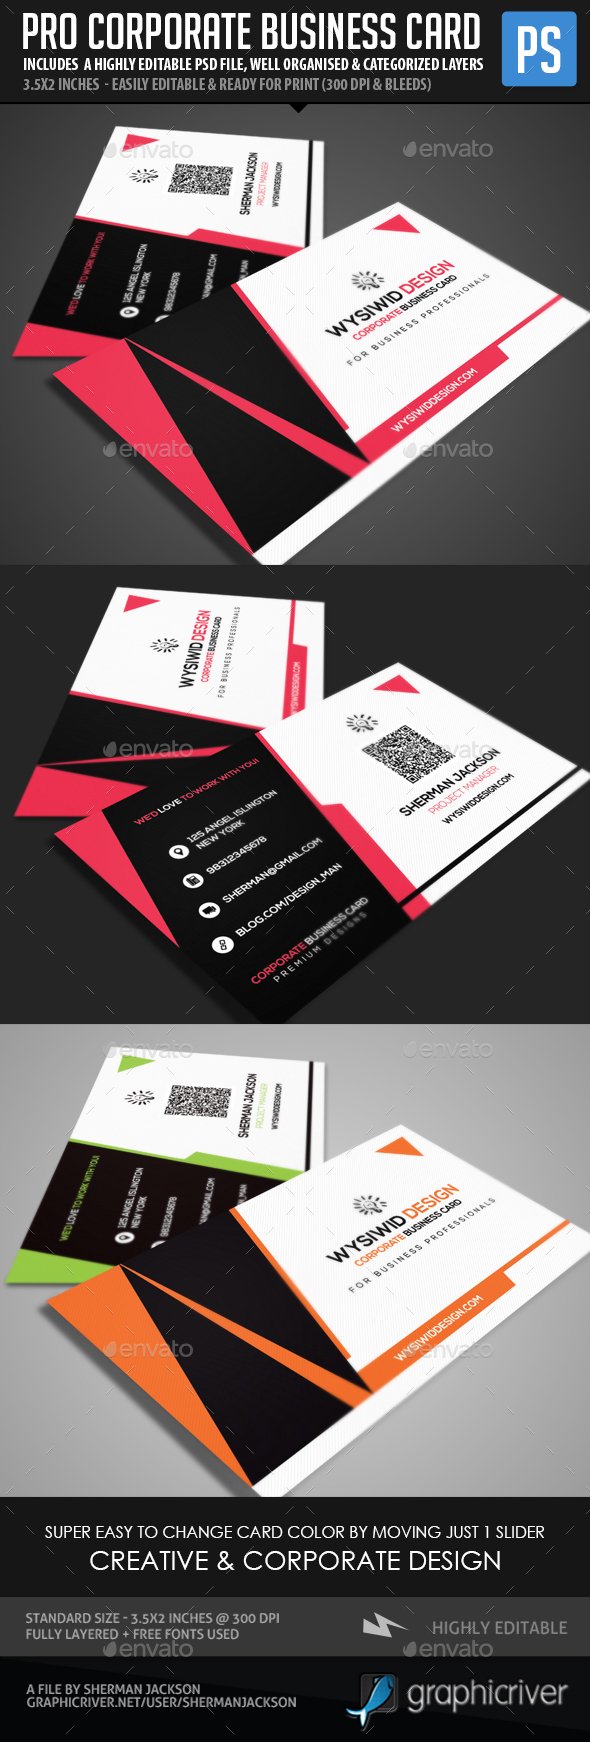 Creative Business Cards Graphics, Designs & Templates